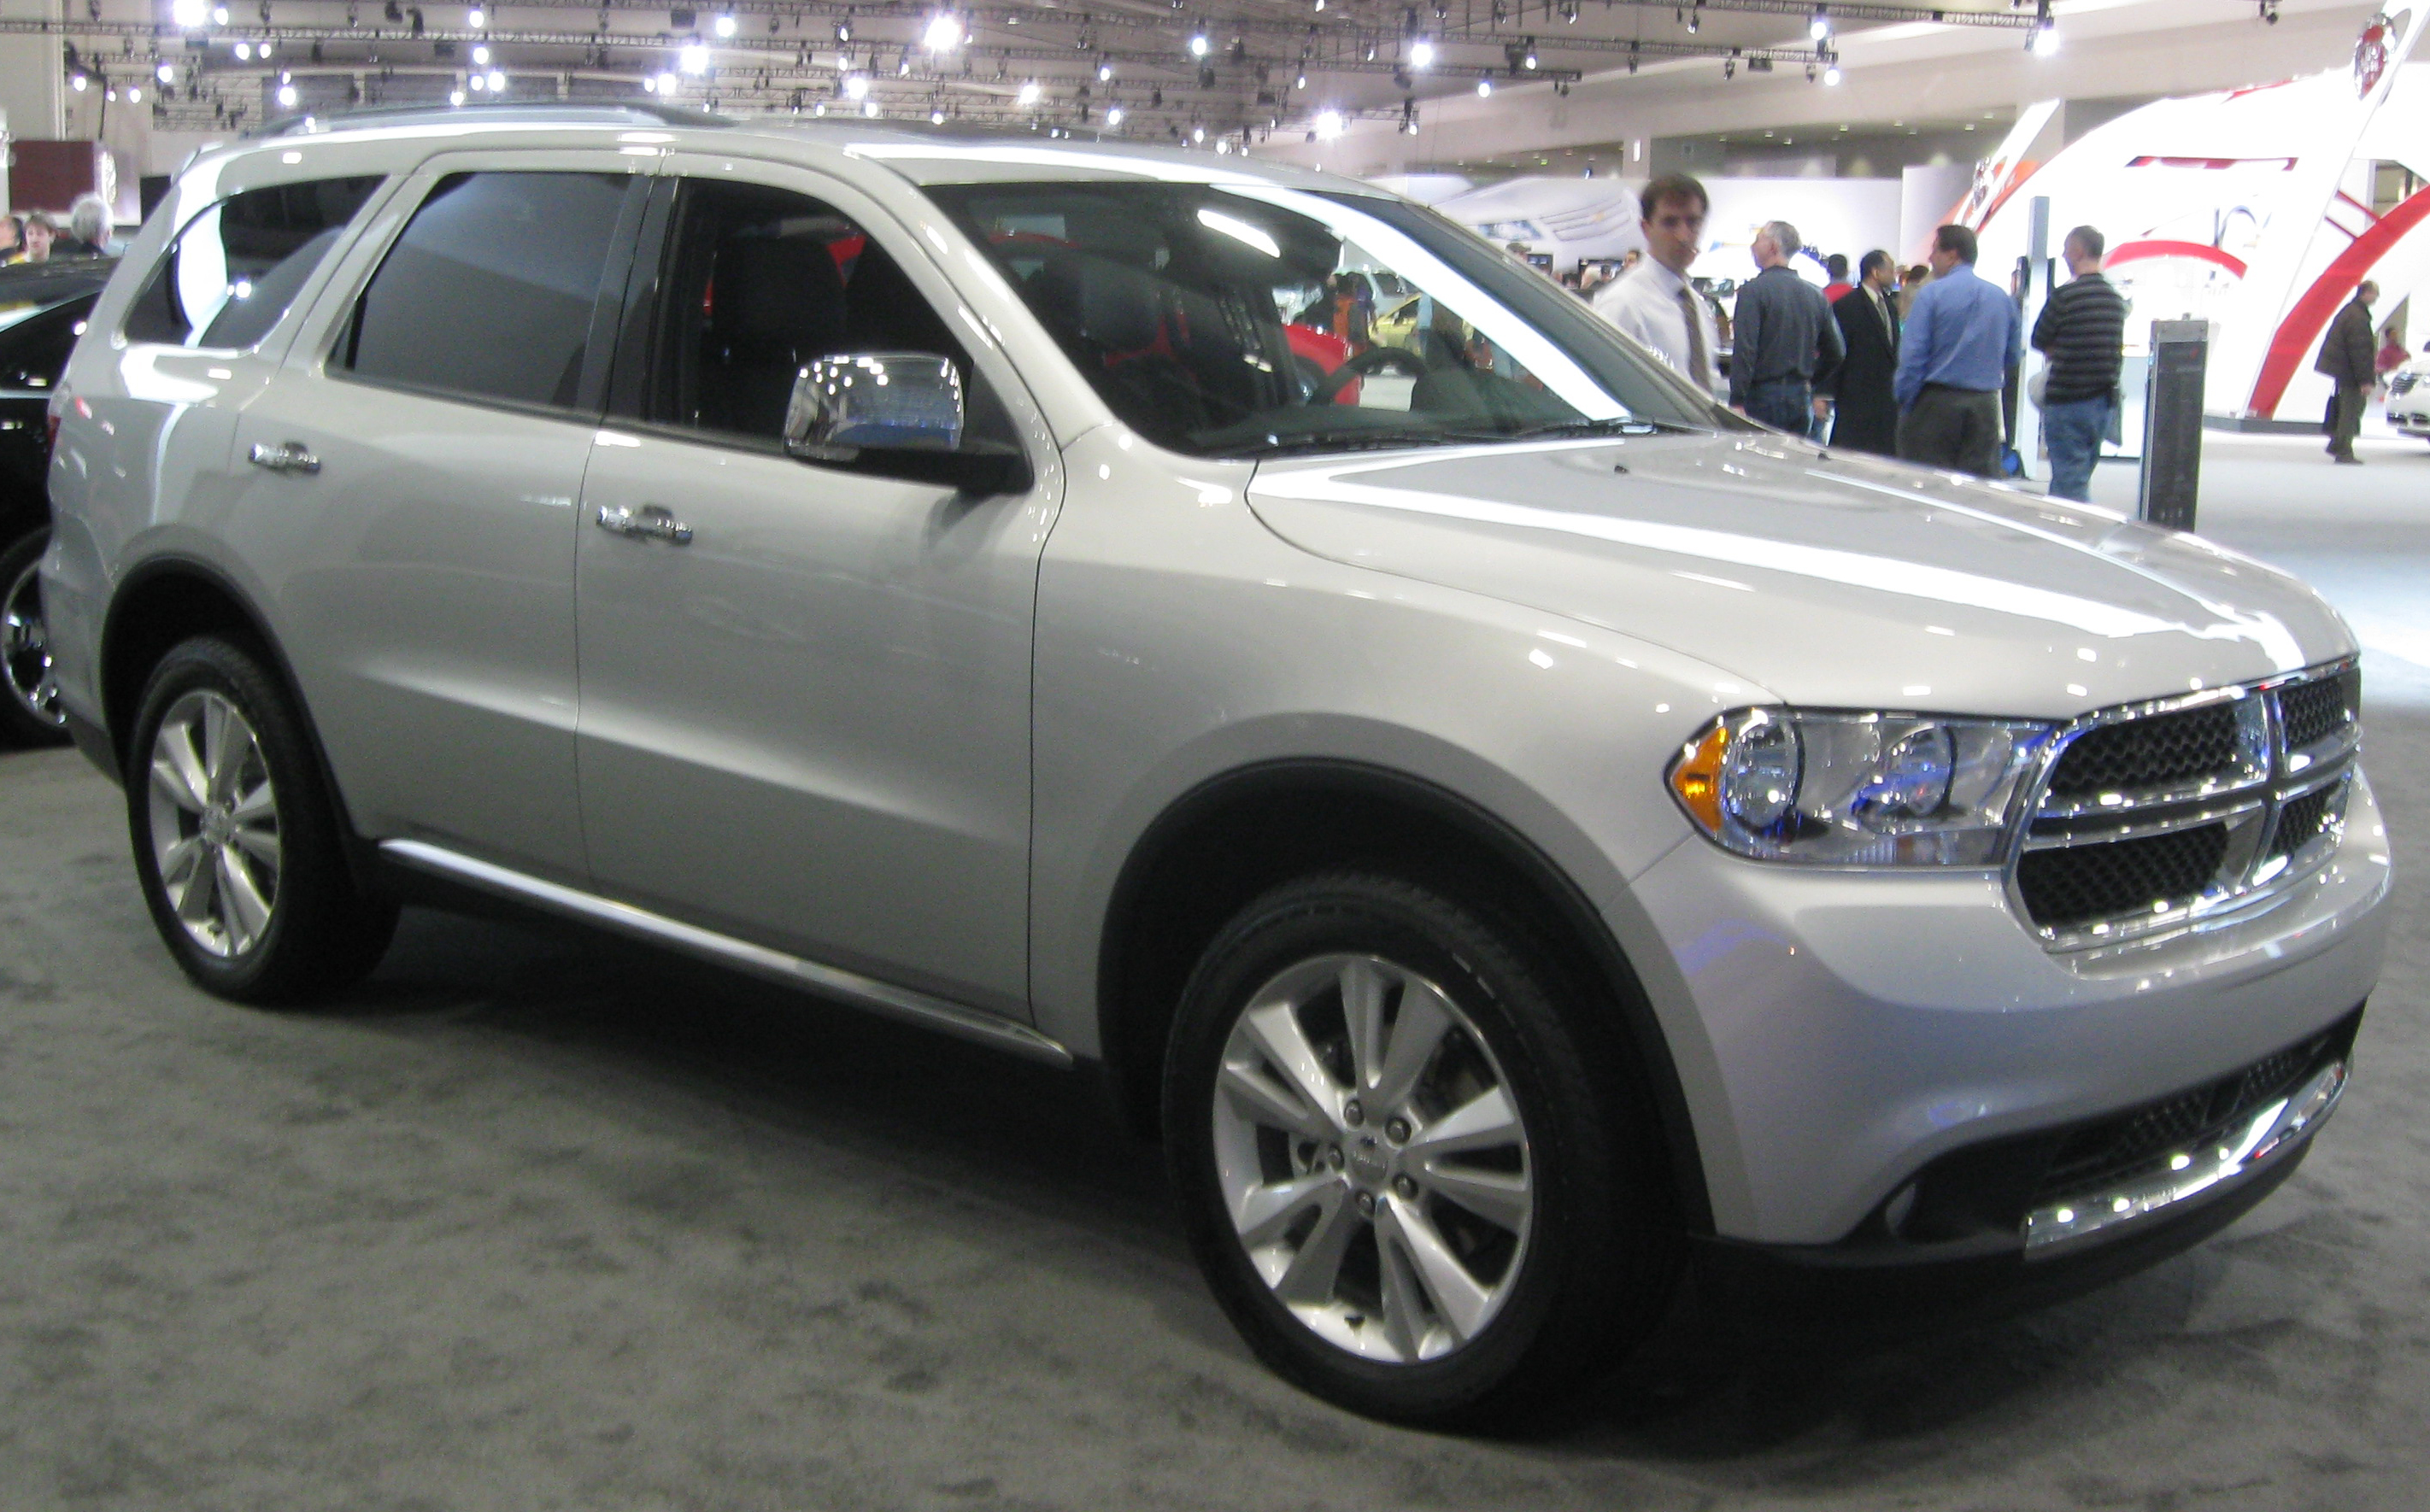 file 2011 dodge durango crewlux 2011 wikimedia commons. Black Bedroom Furniture Sets. Home Design Ideas